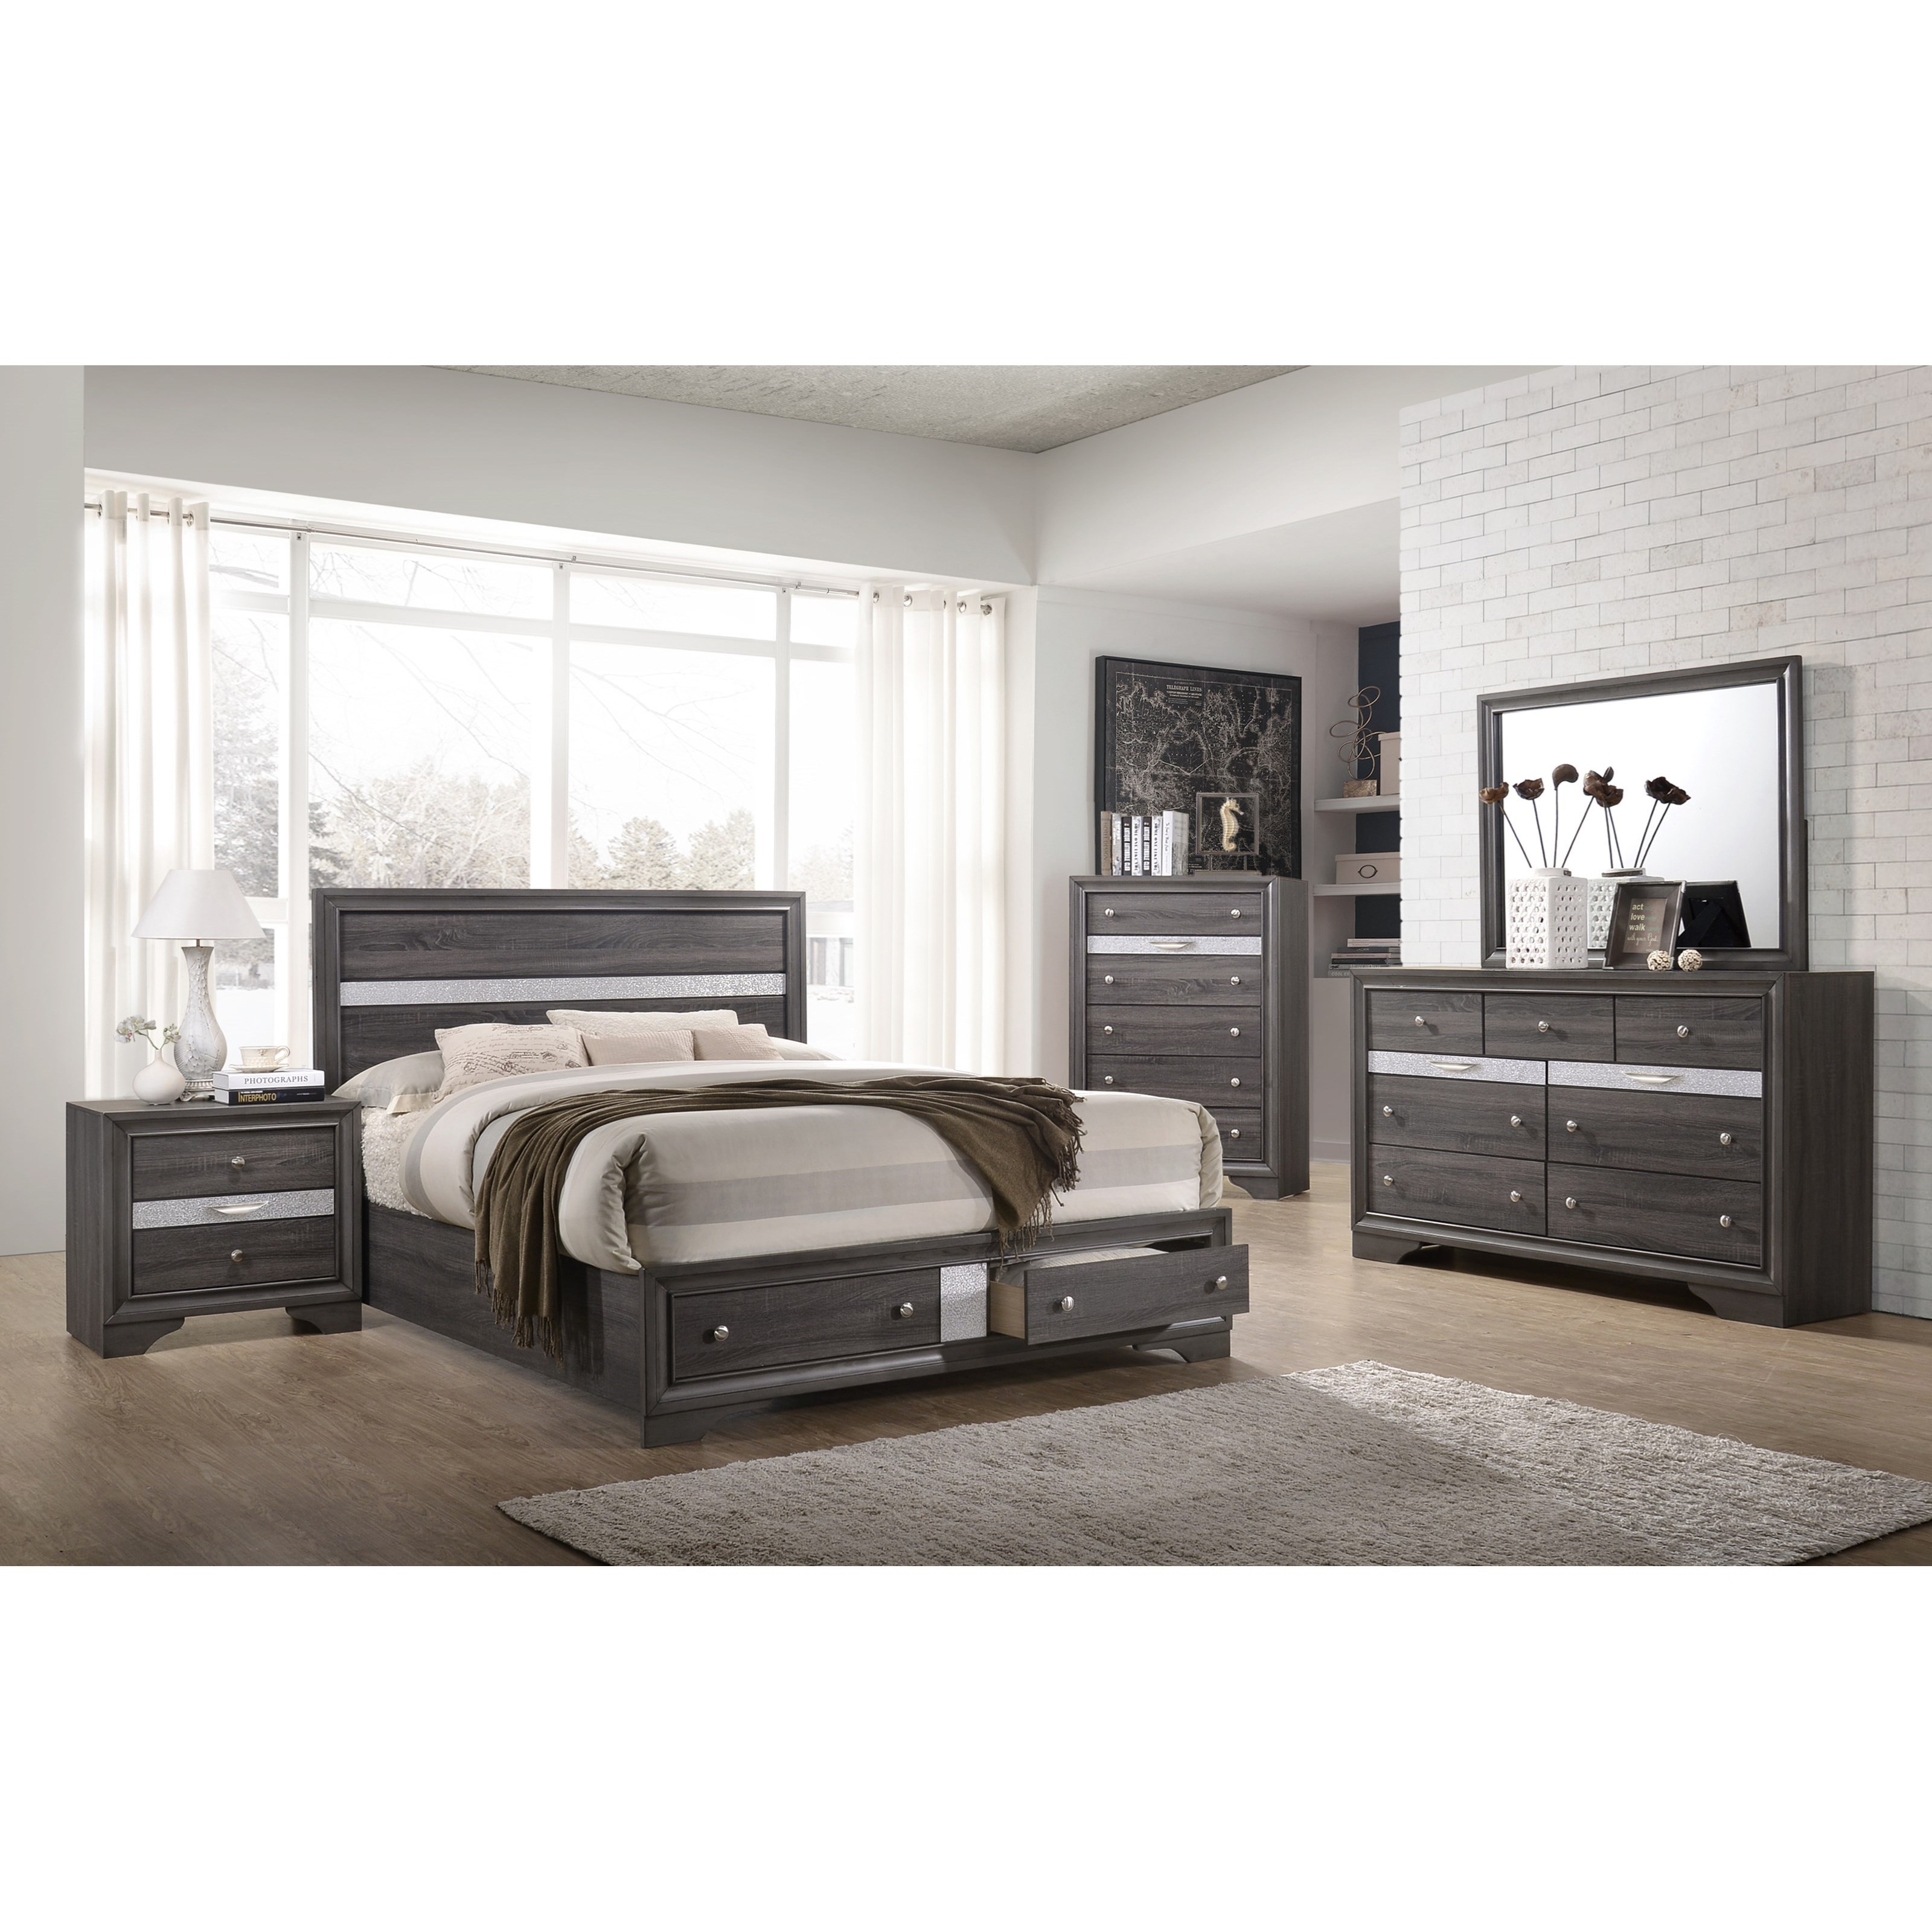 Regata Queen Bedroom Group by Crown Mark at Northeast Factory Direct